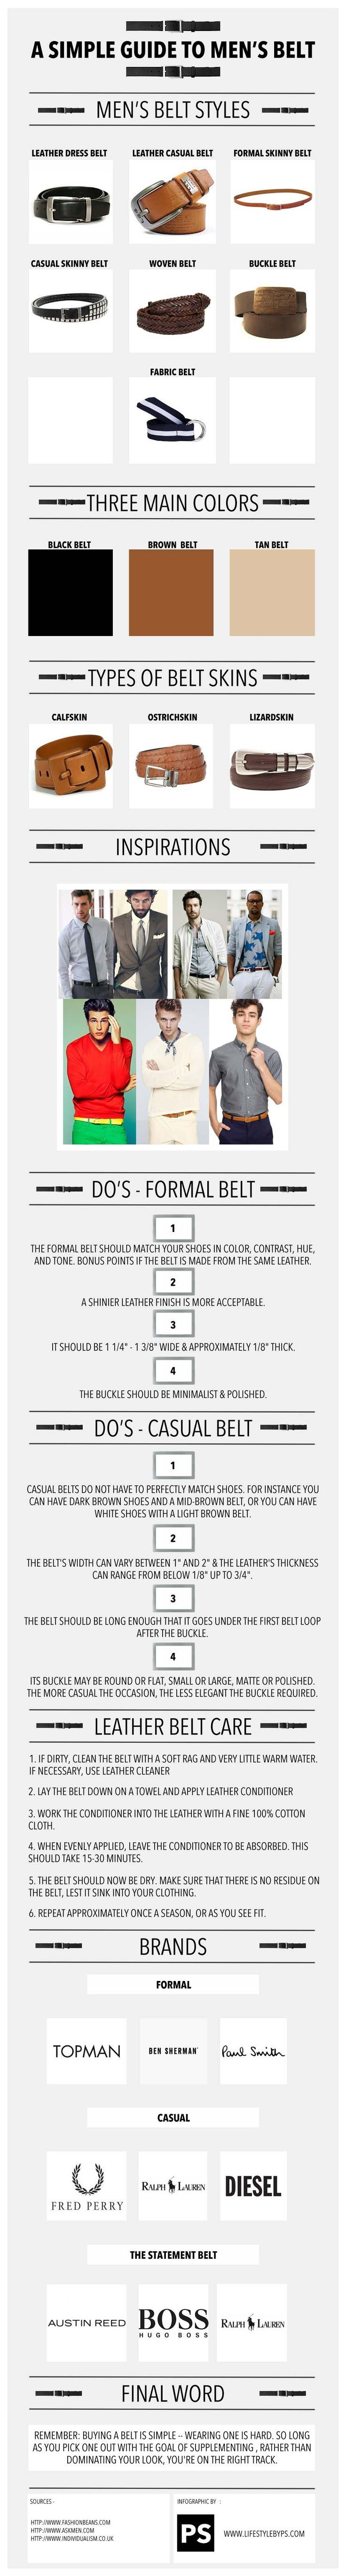 A Simple Guide to Men's Belts. Una guía sencilla sobre los cinturones masculinos.